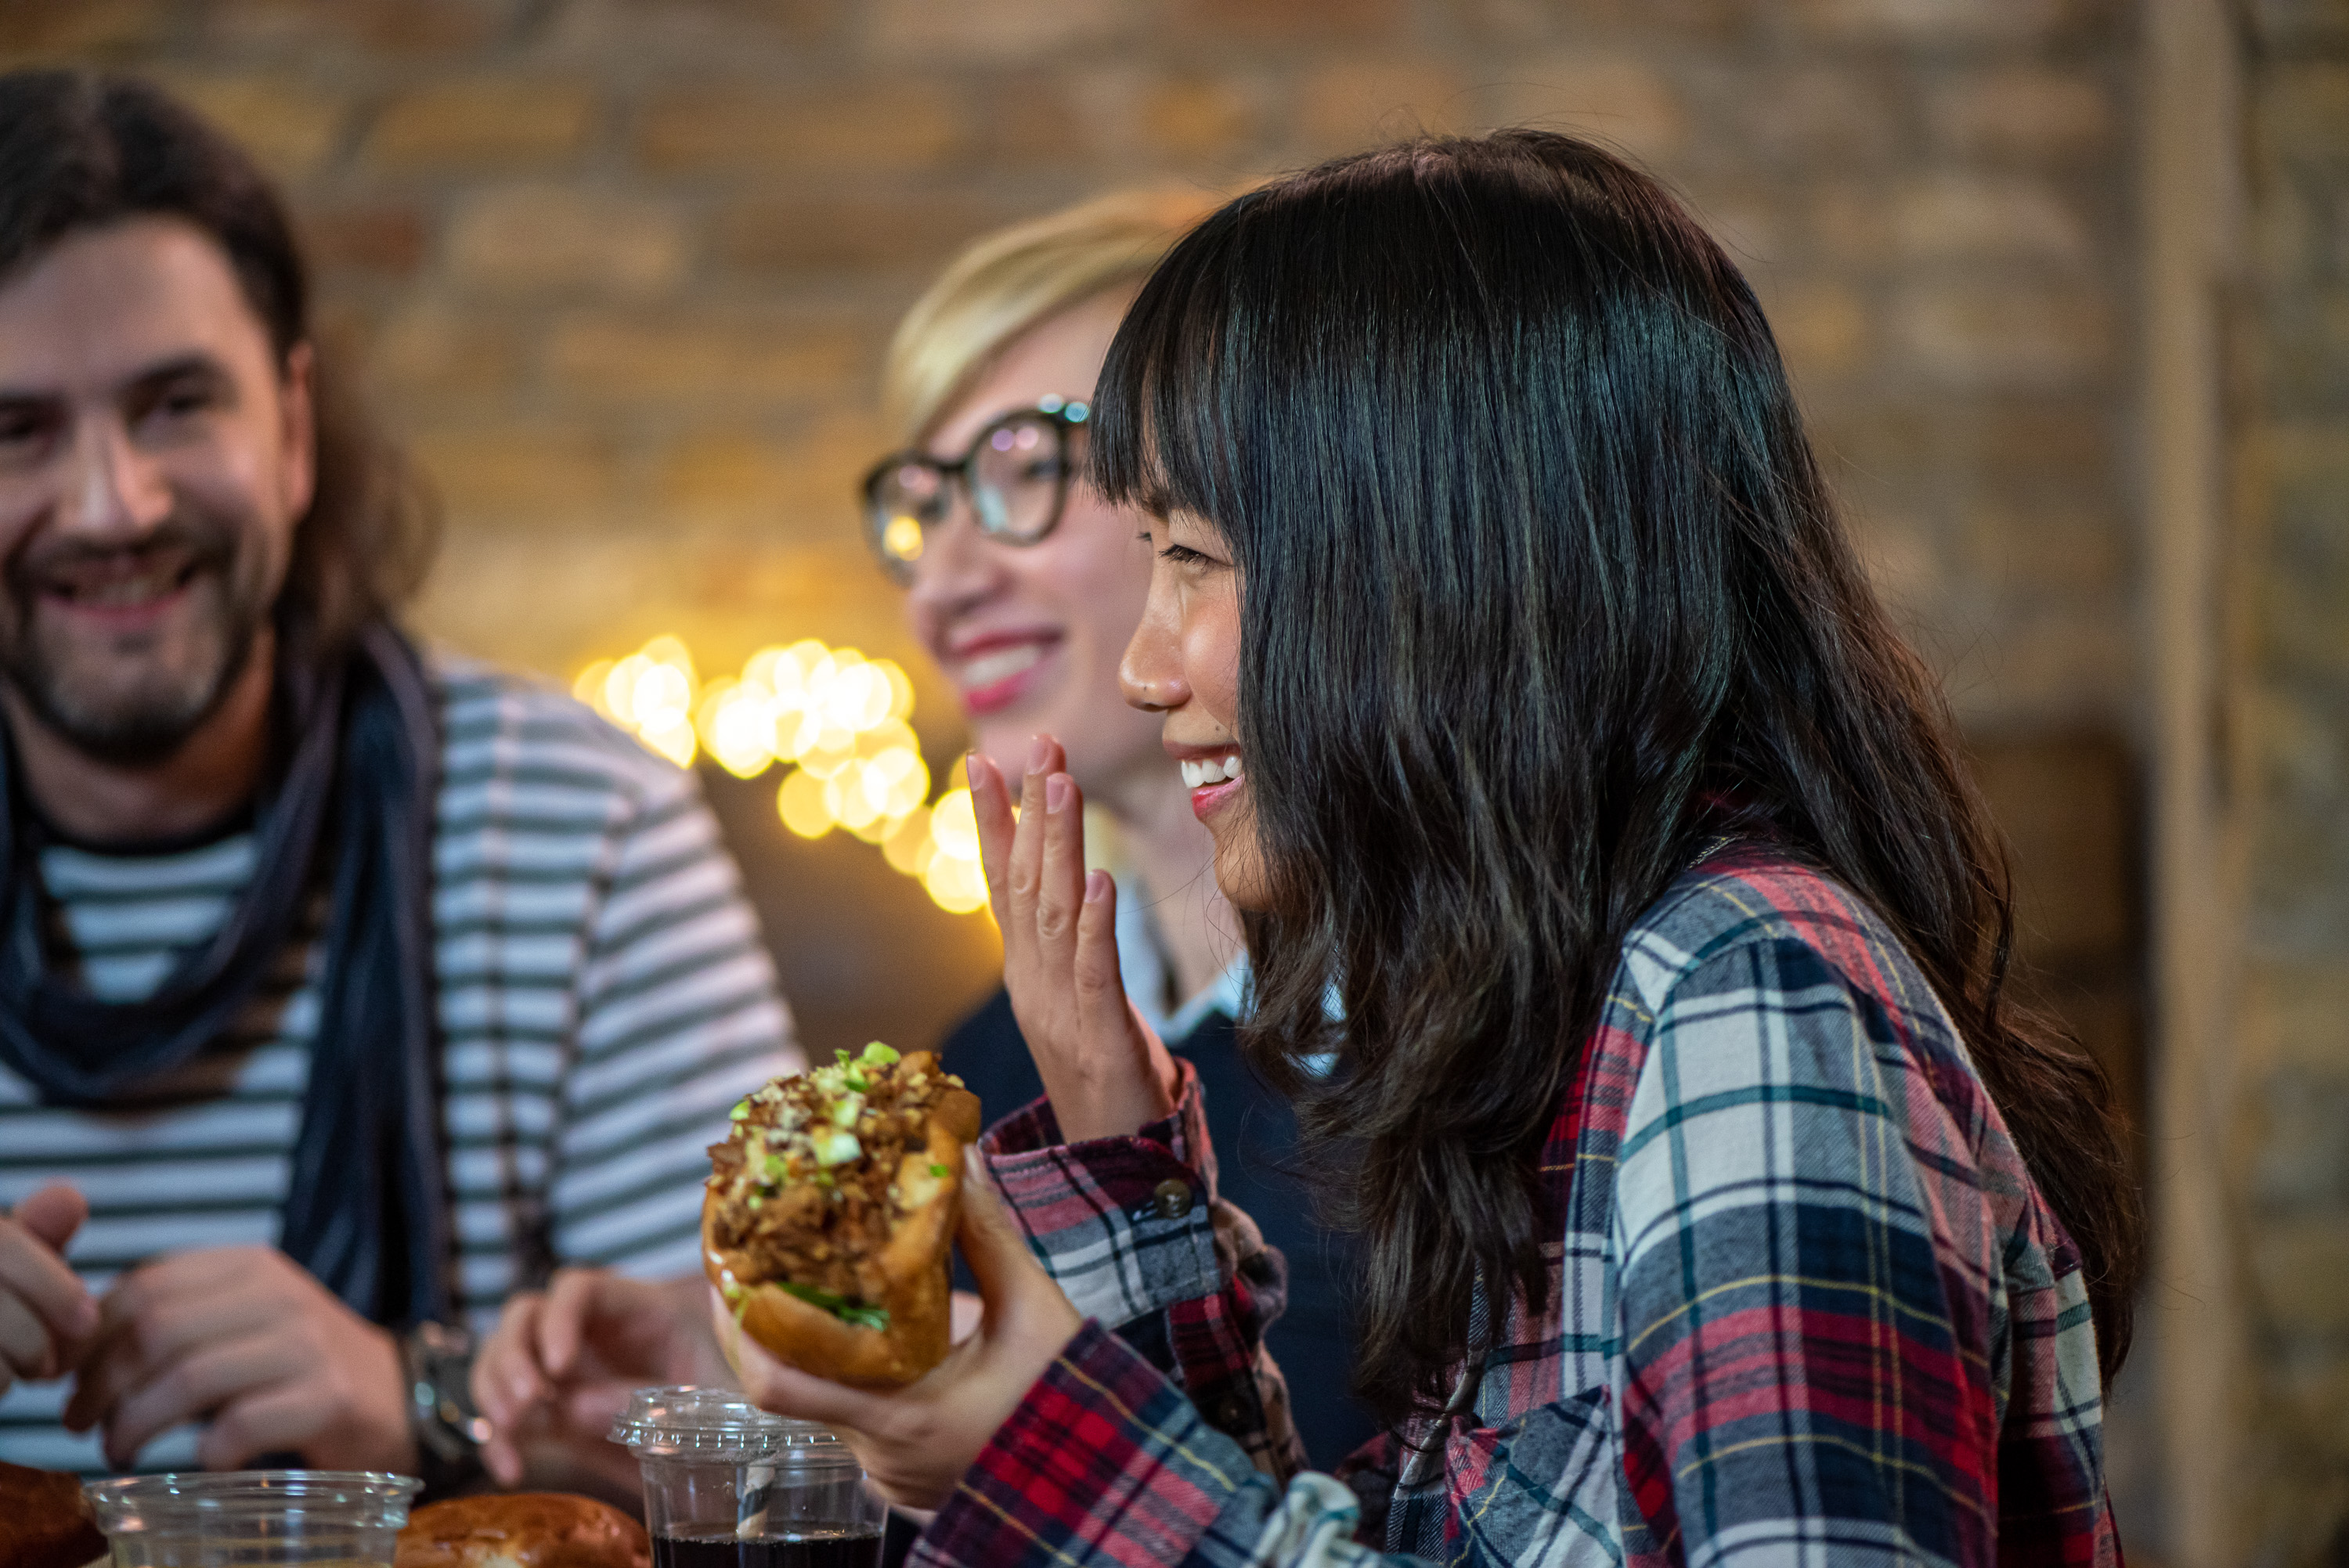 What Is The Secret Behind The Street Food Phenomenon?